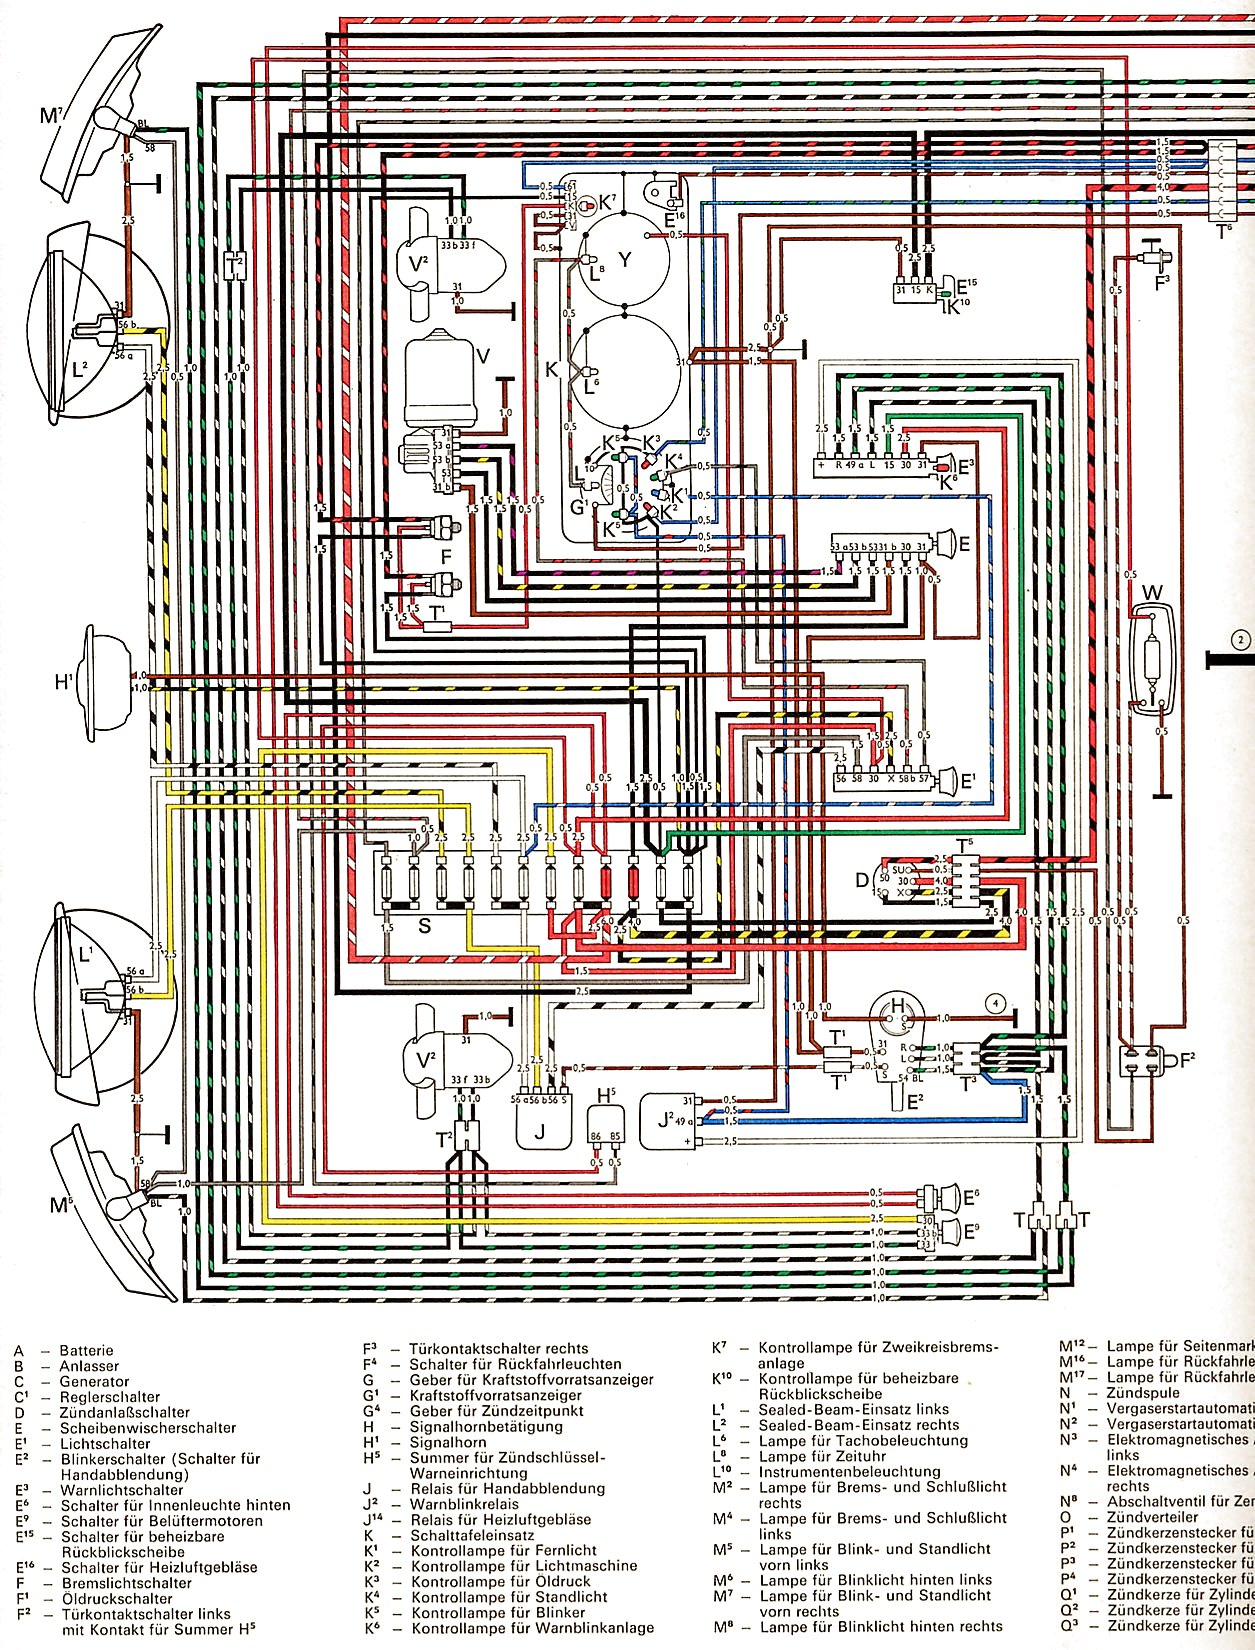 Sensational 1977 Vw T3 Engine Diagram Basic Electronics Wiring Diagram Wiring Cloud Geisbieswglorg